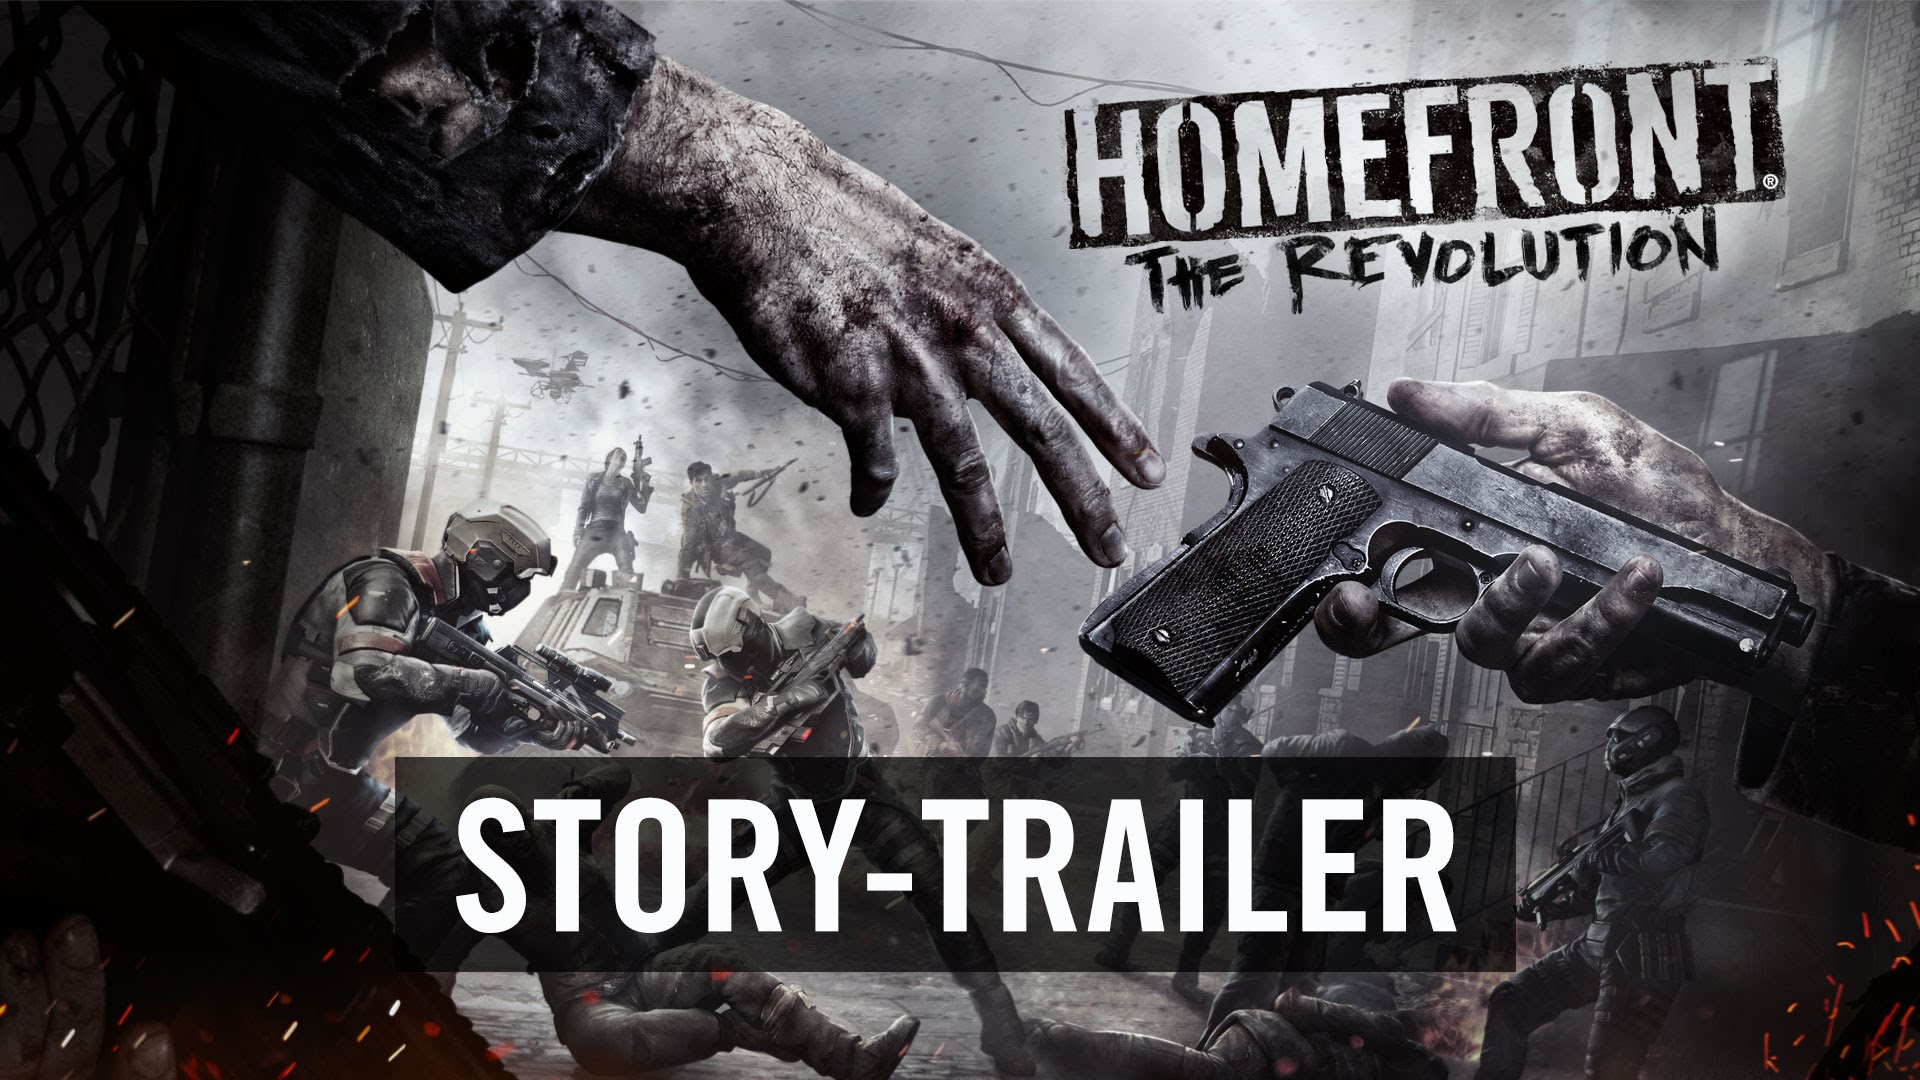 Homefront: The Revolution Story-Trailer